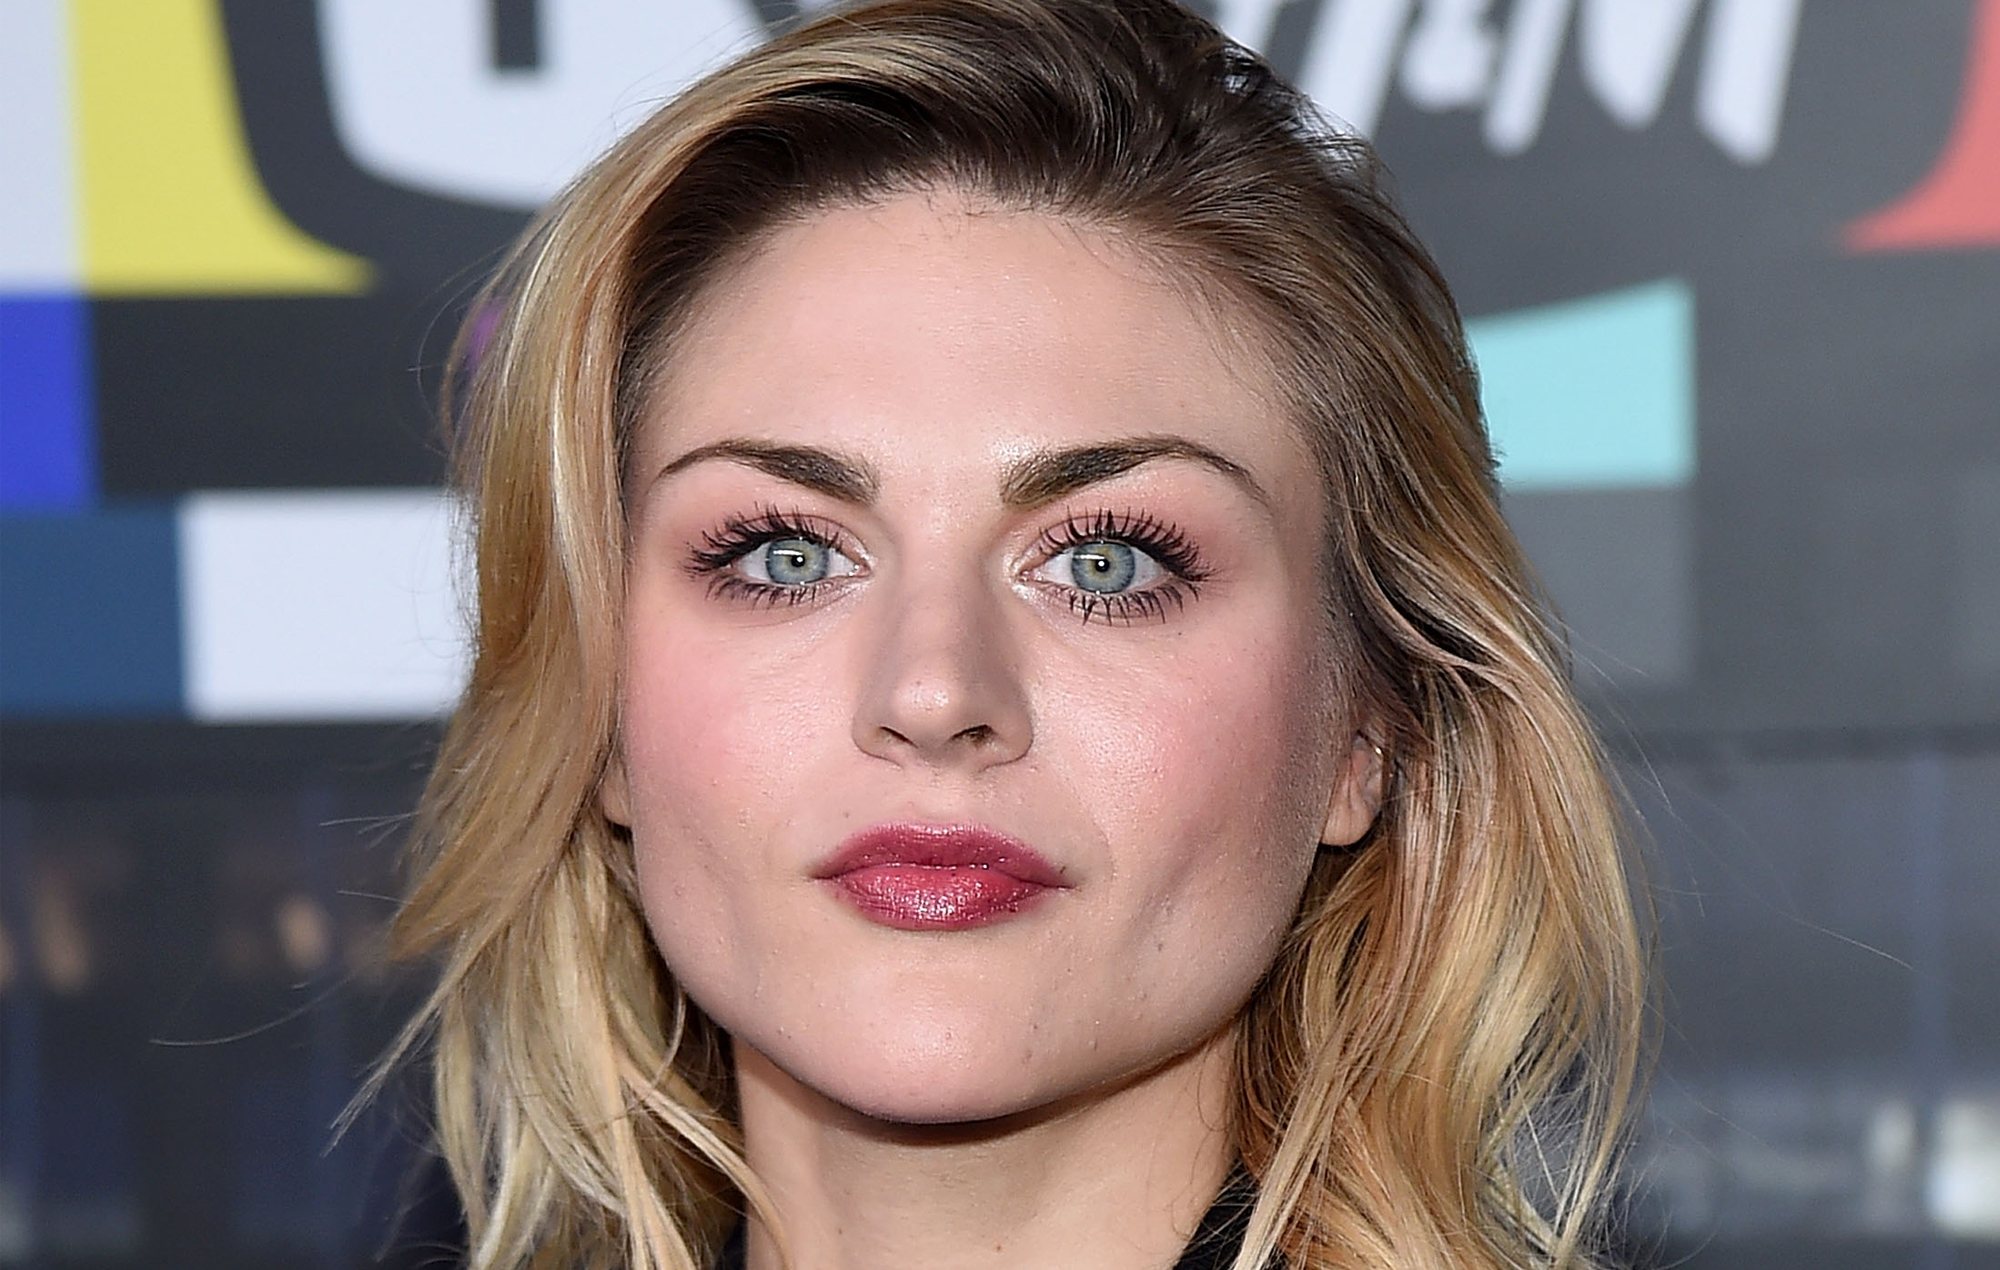 Frances Bean Cobain Shares Very Sad Song Snippet On